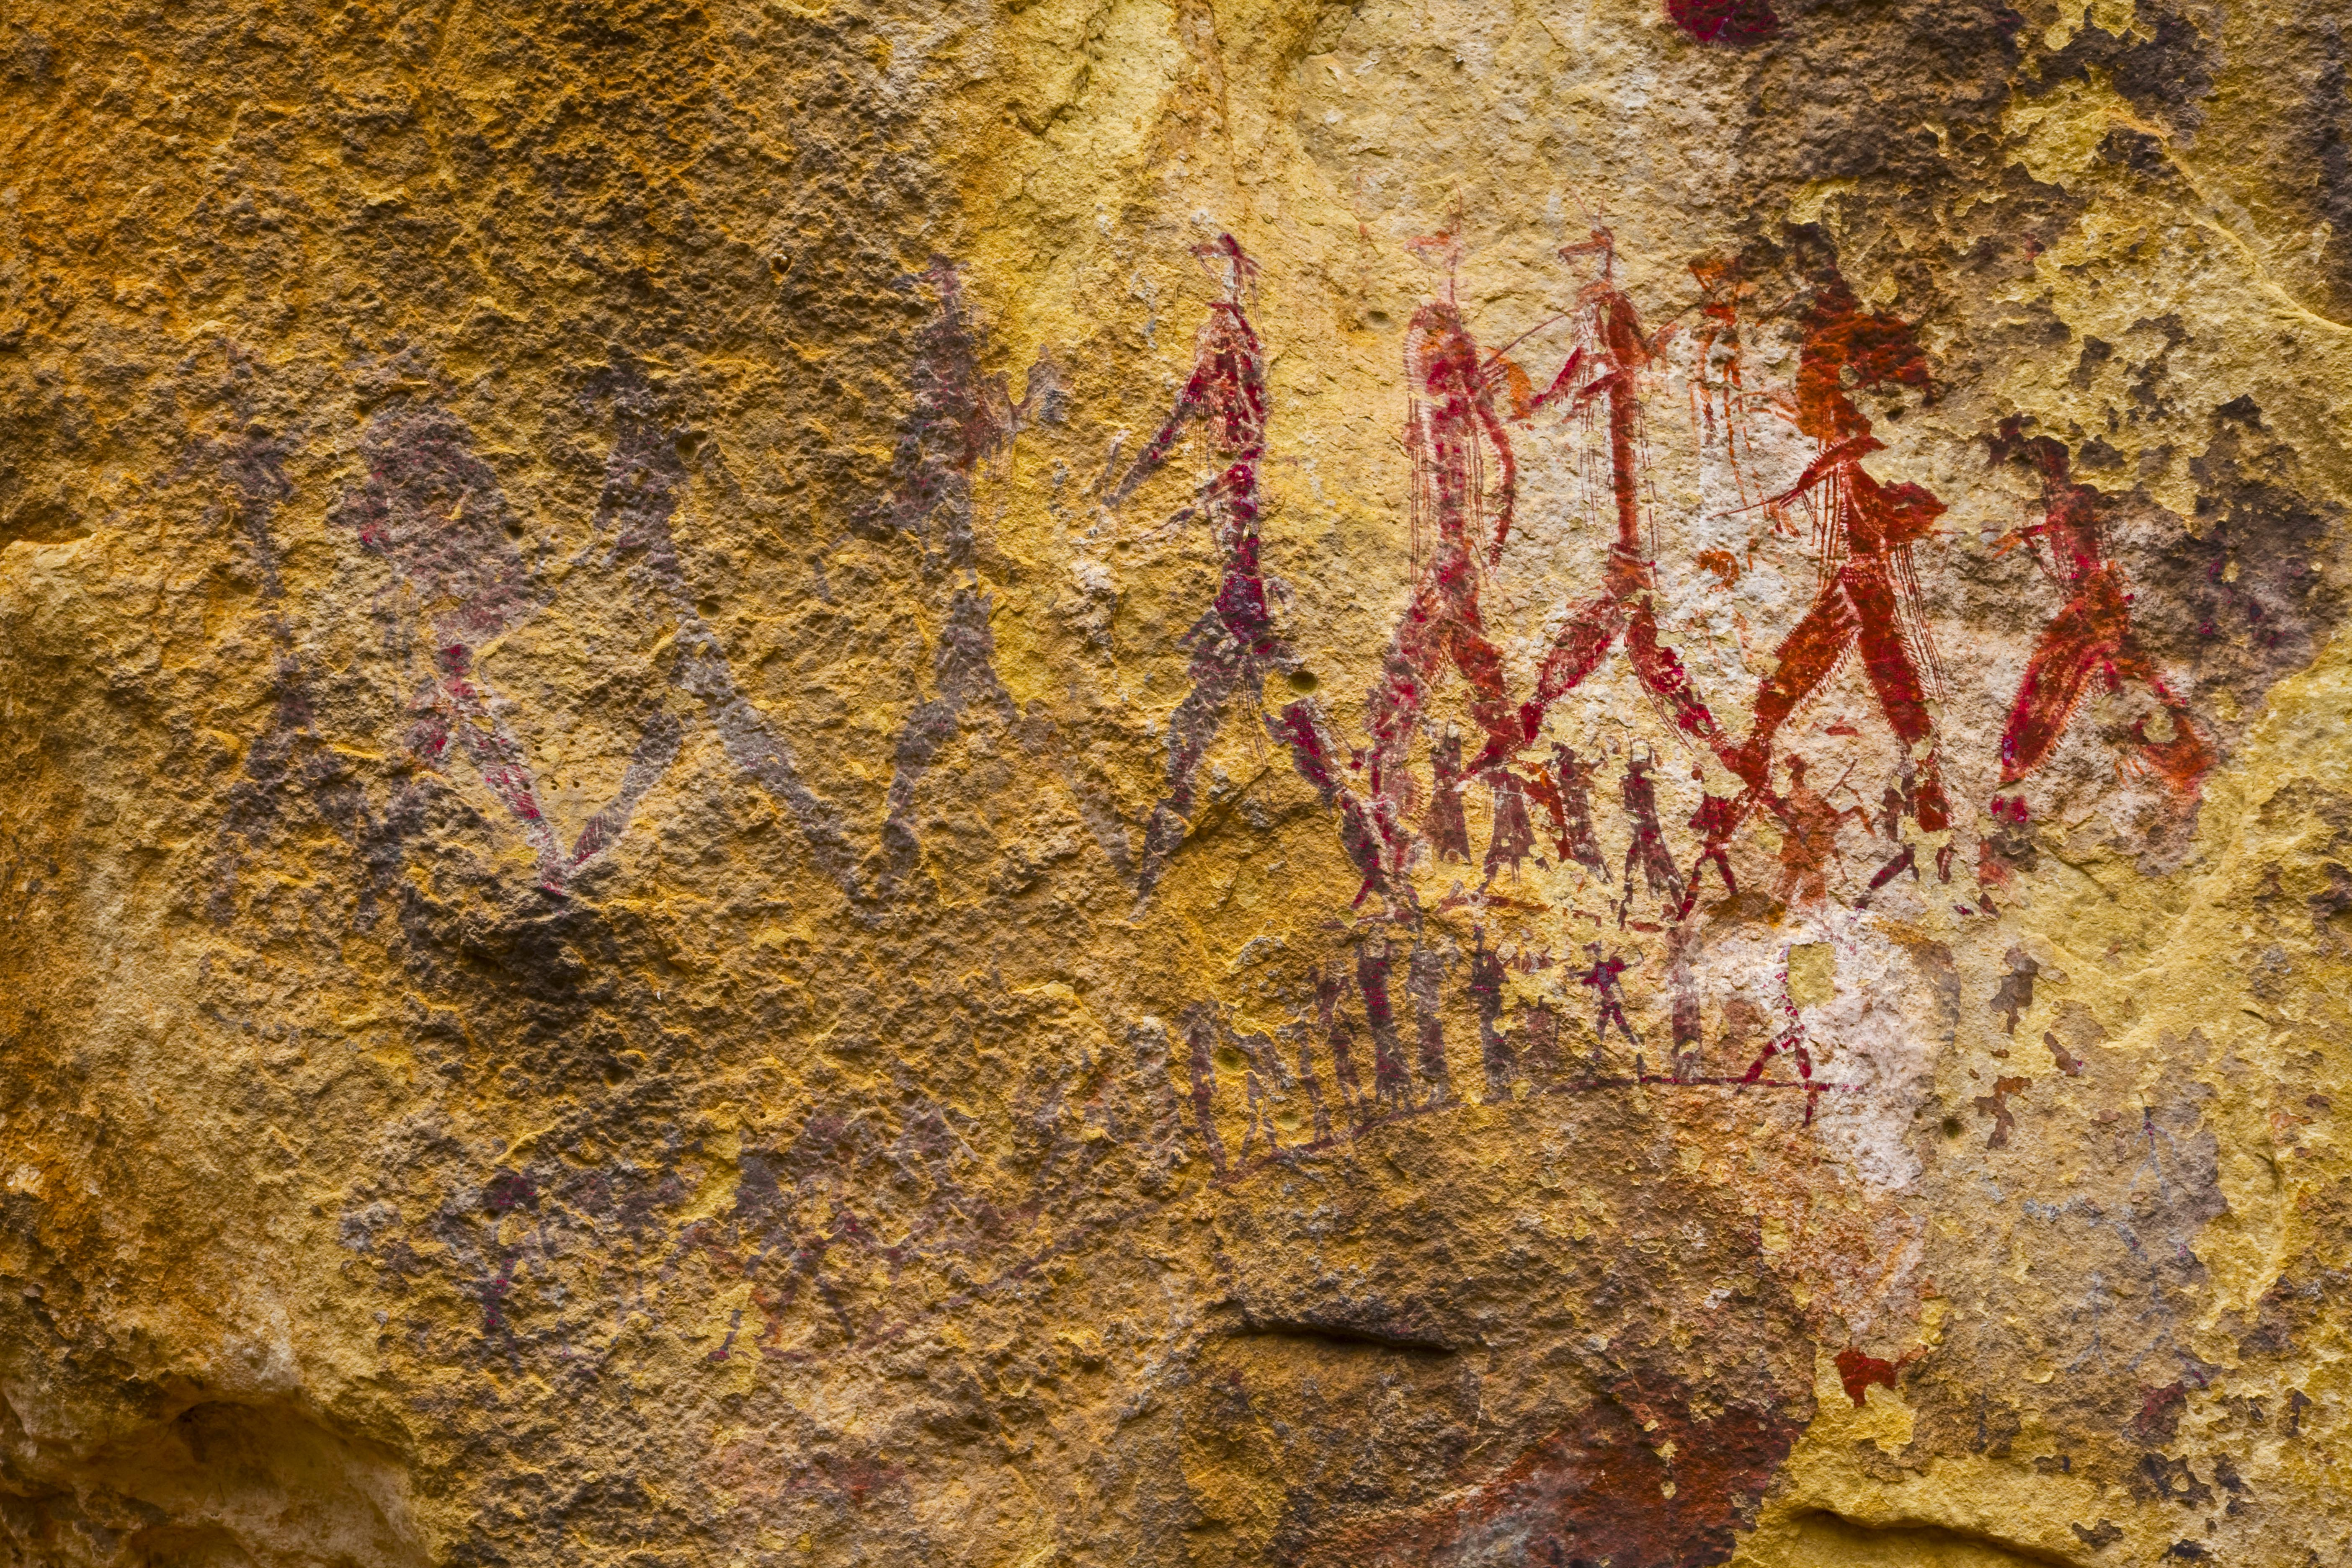 San Rock art in  Drakensberg Mountains Photographed by Tom Till